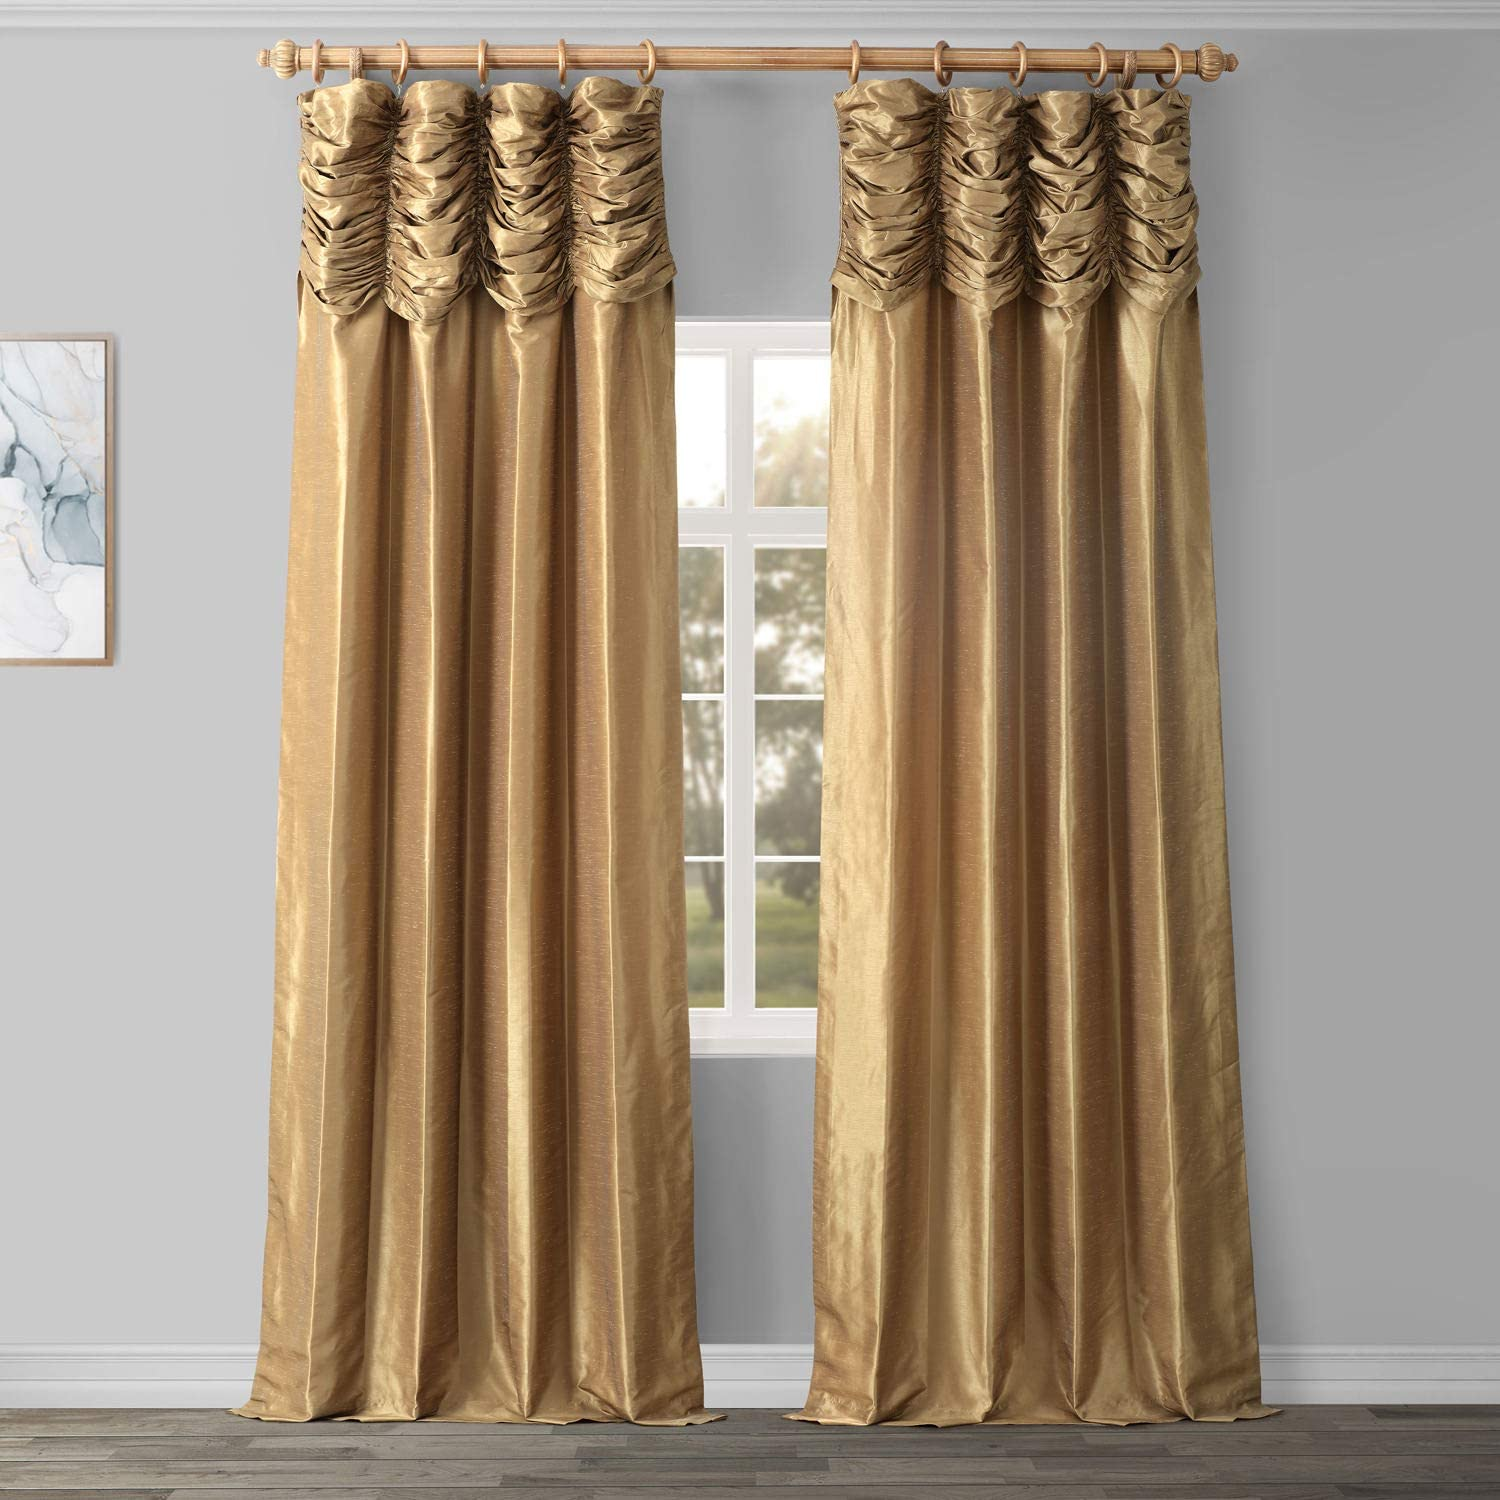 Ranking TOP11 HPD Half Japan Maker New Price Drapes PDCH-KBS8-108-RU Ruched F Textured Vintage